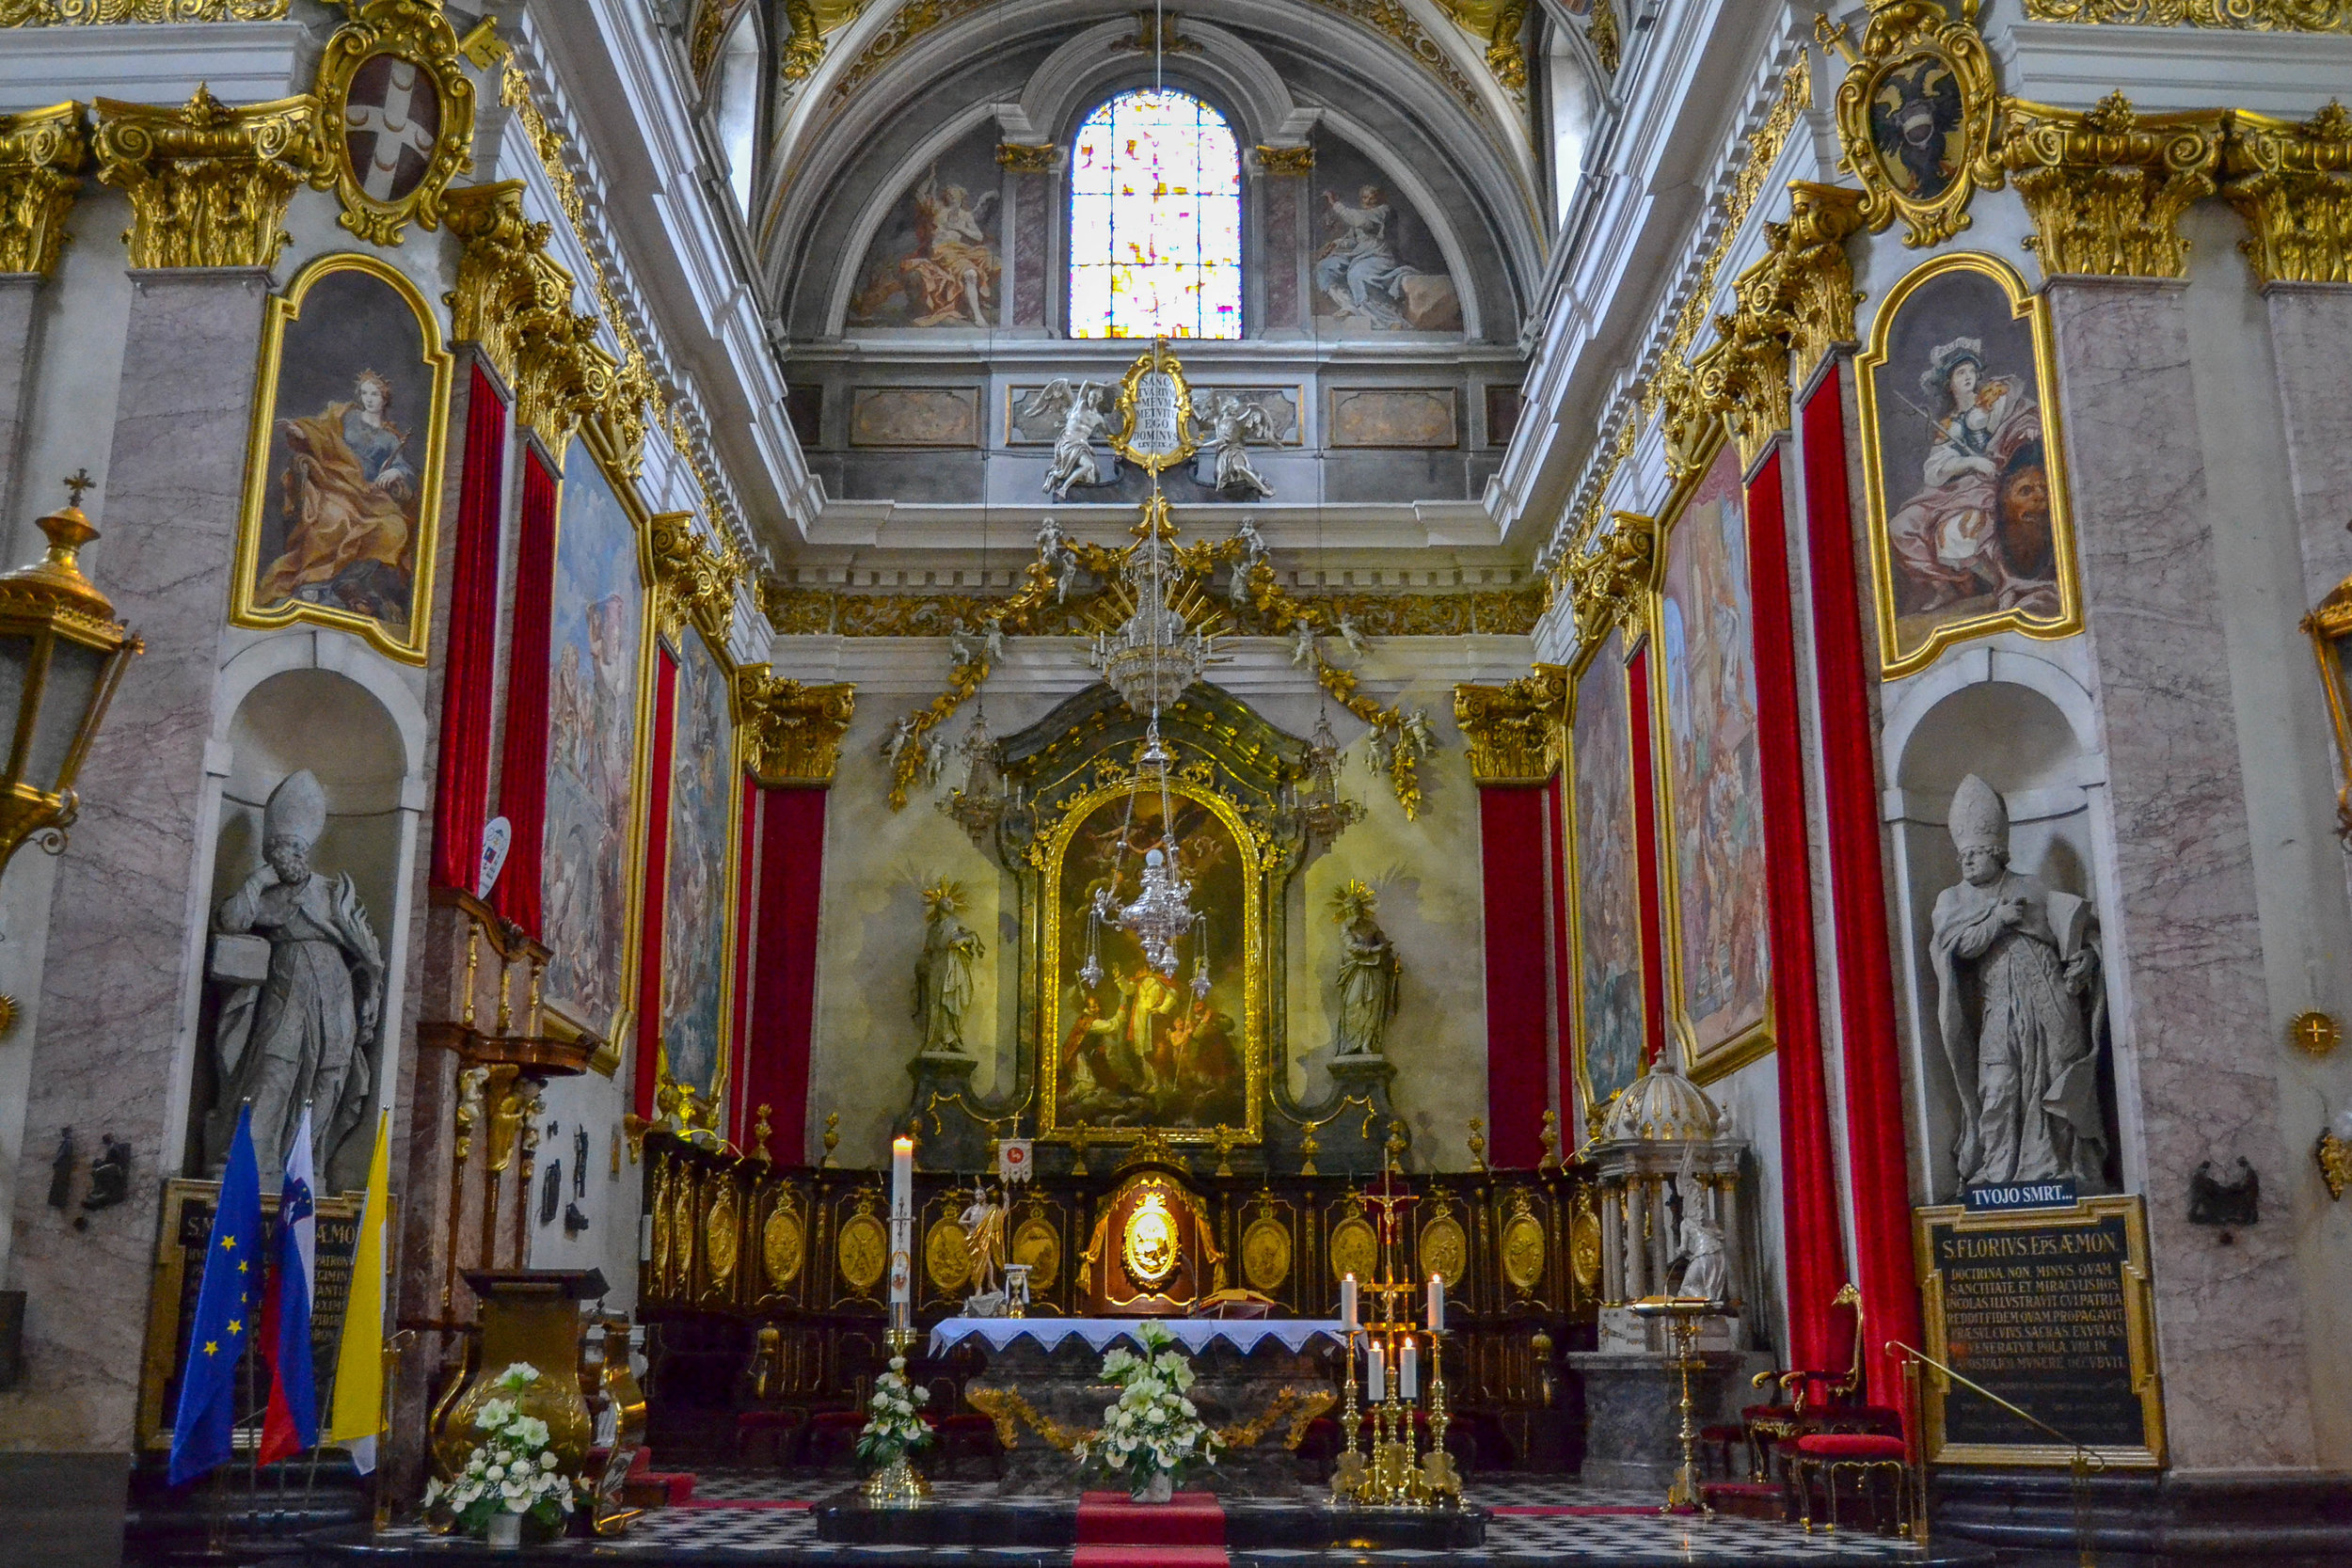 The High Altar of Ljubljana Cathedral